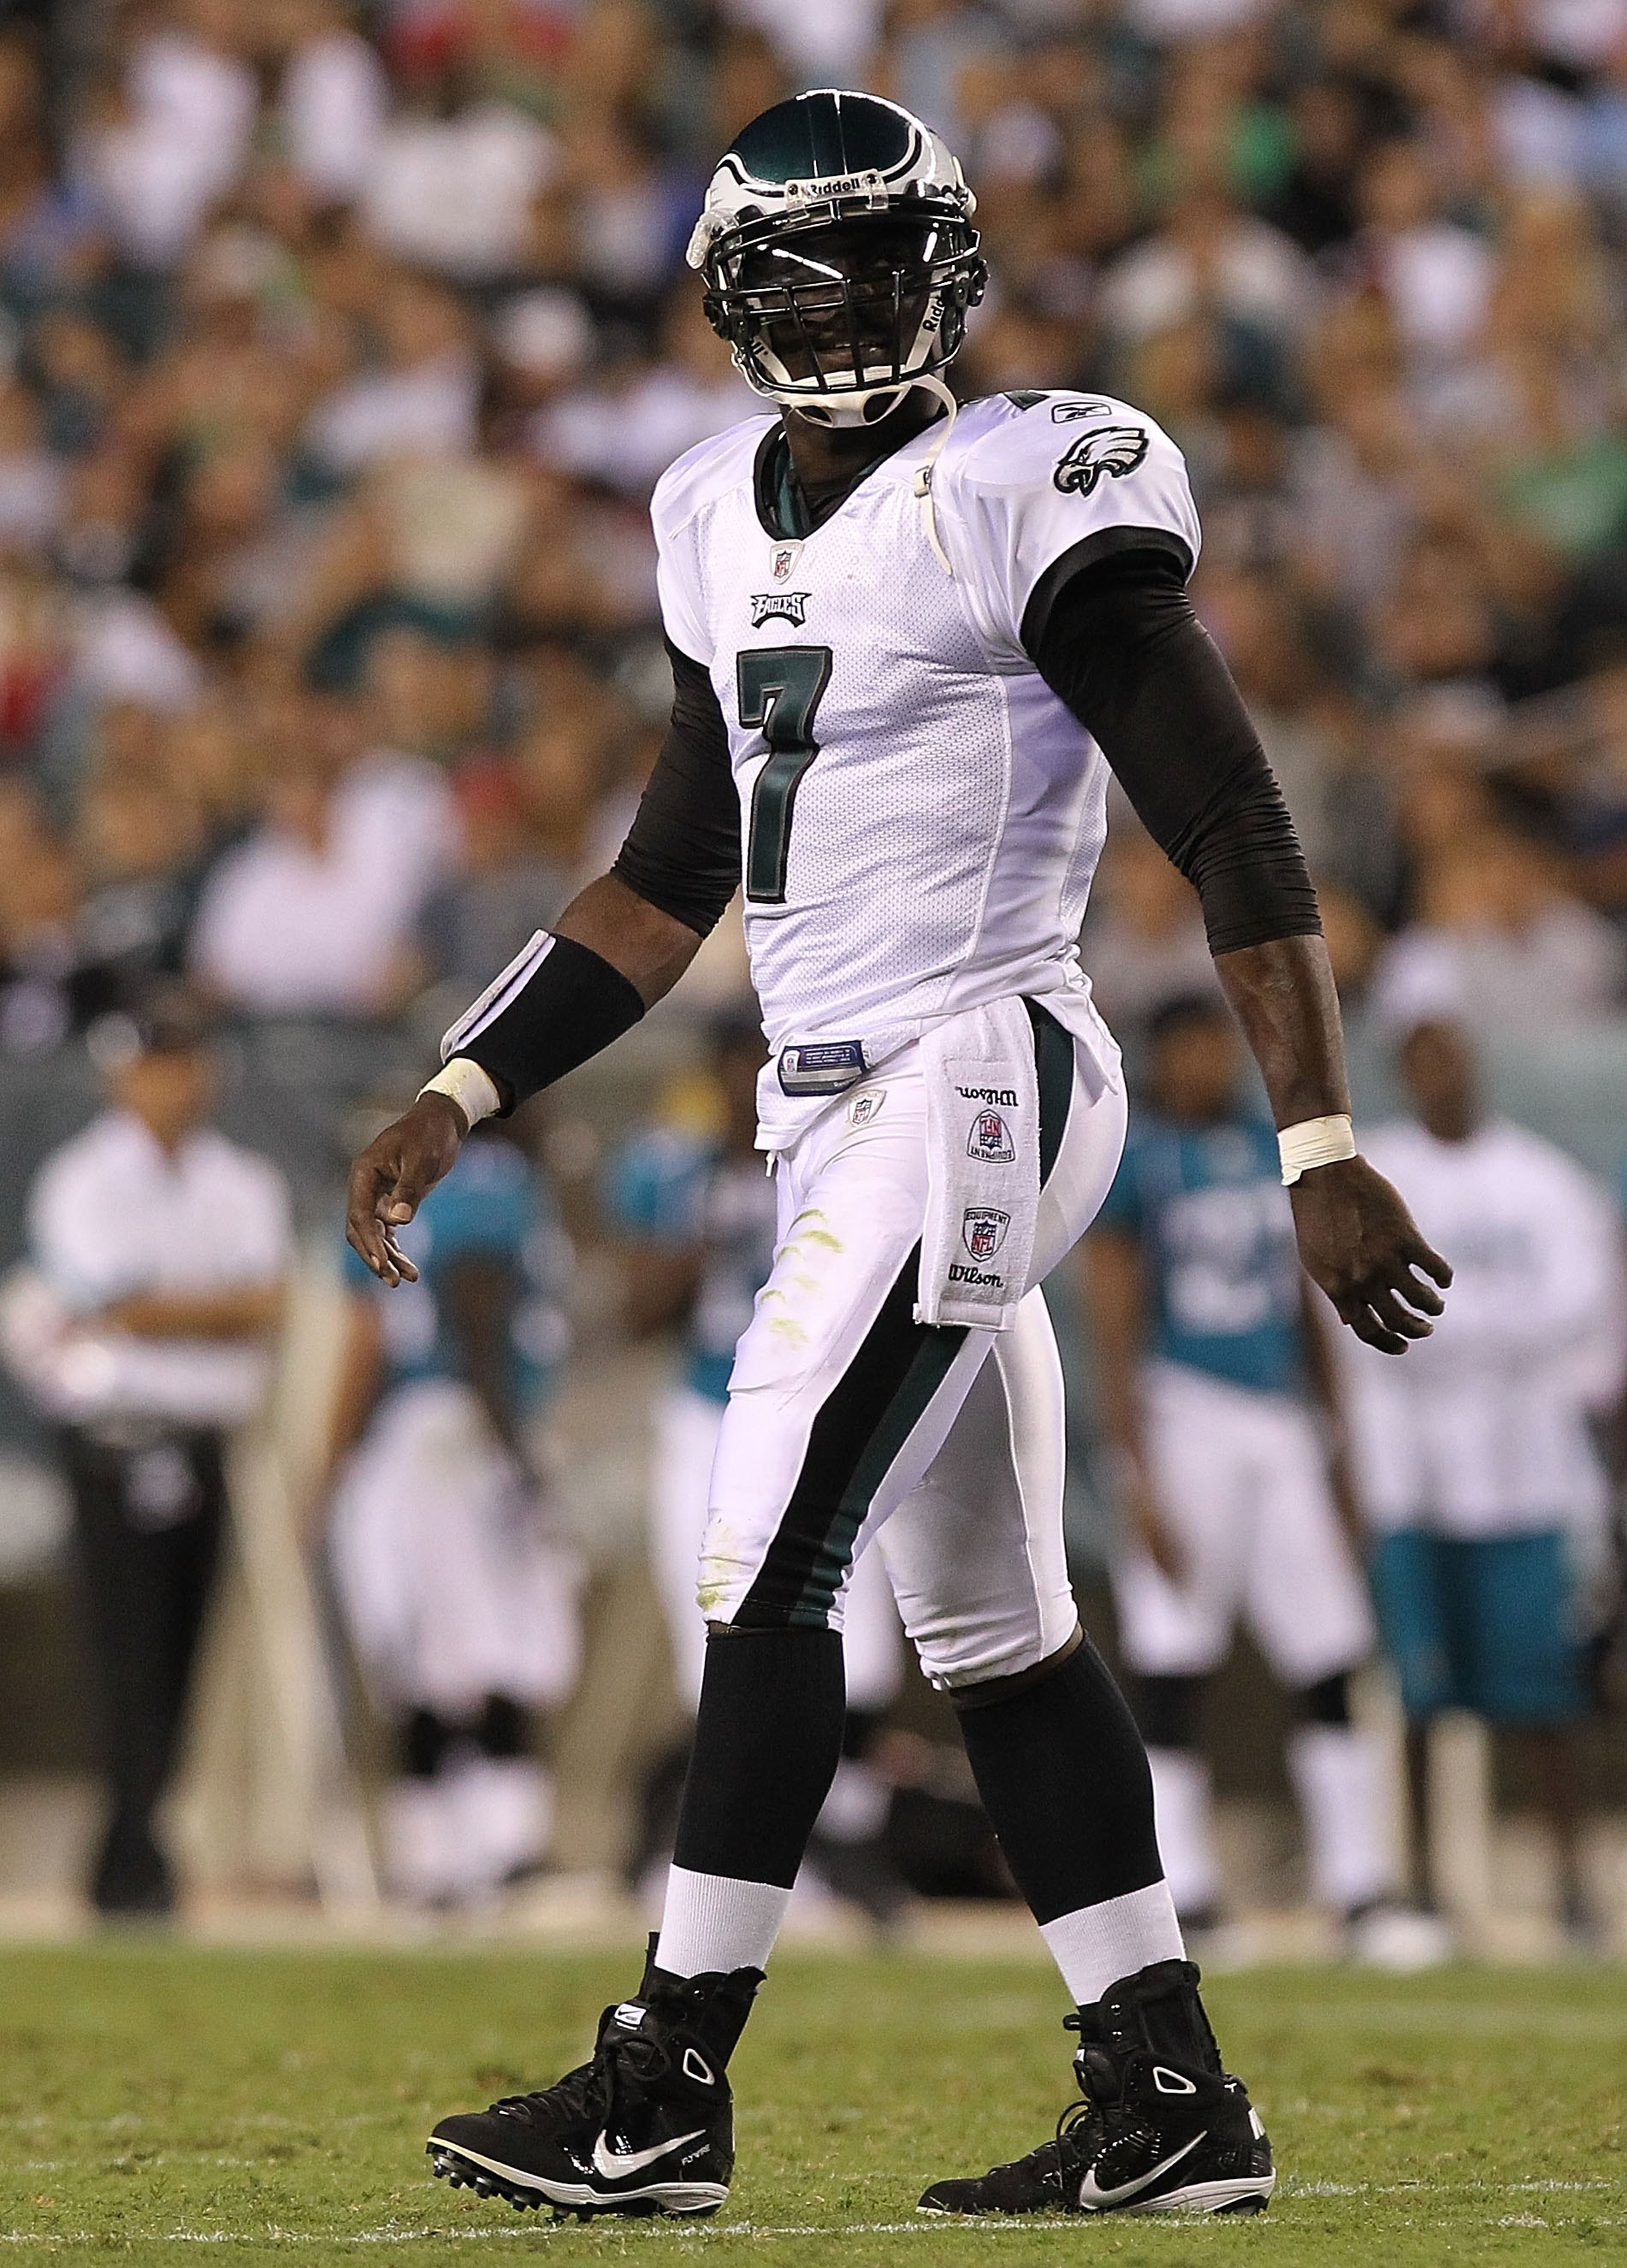 PHILADELPHIA - AUGUST 13:  Michael Vick #7 of the Philadelphia Eagles walks to the sideline against the Jacksonville Jaguars during their preseason game at Lincoln Financial Field on August 13, 2010 in Philadelphia, Pennsylvania.  (Photo by Nick Laham/Get